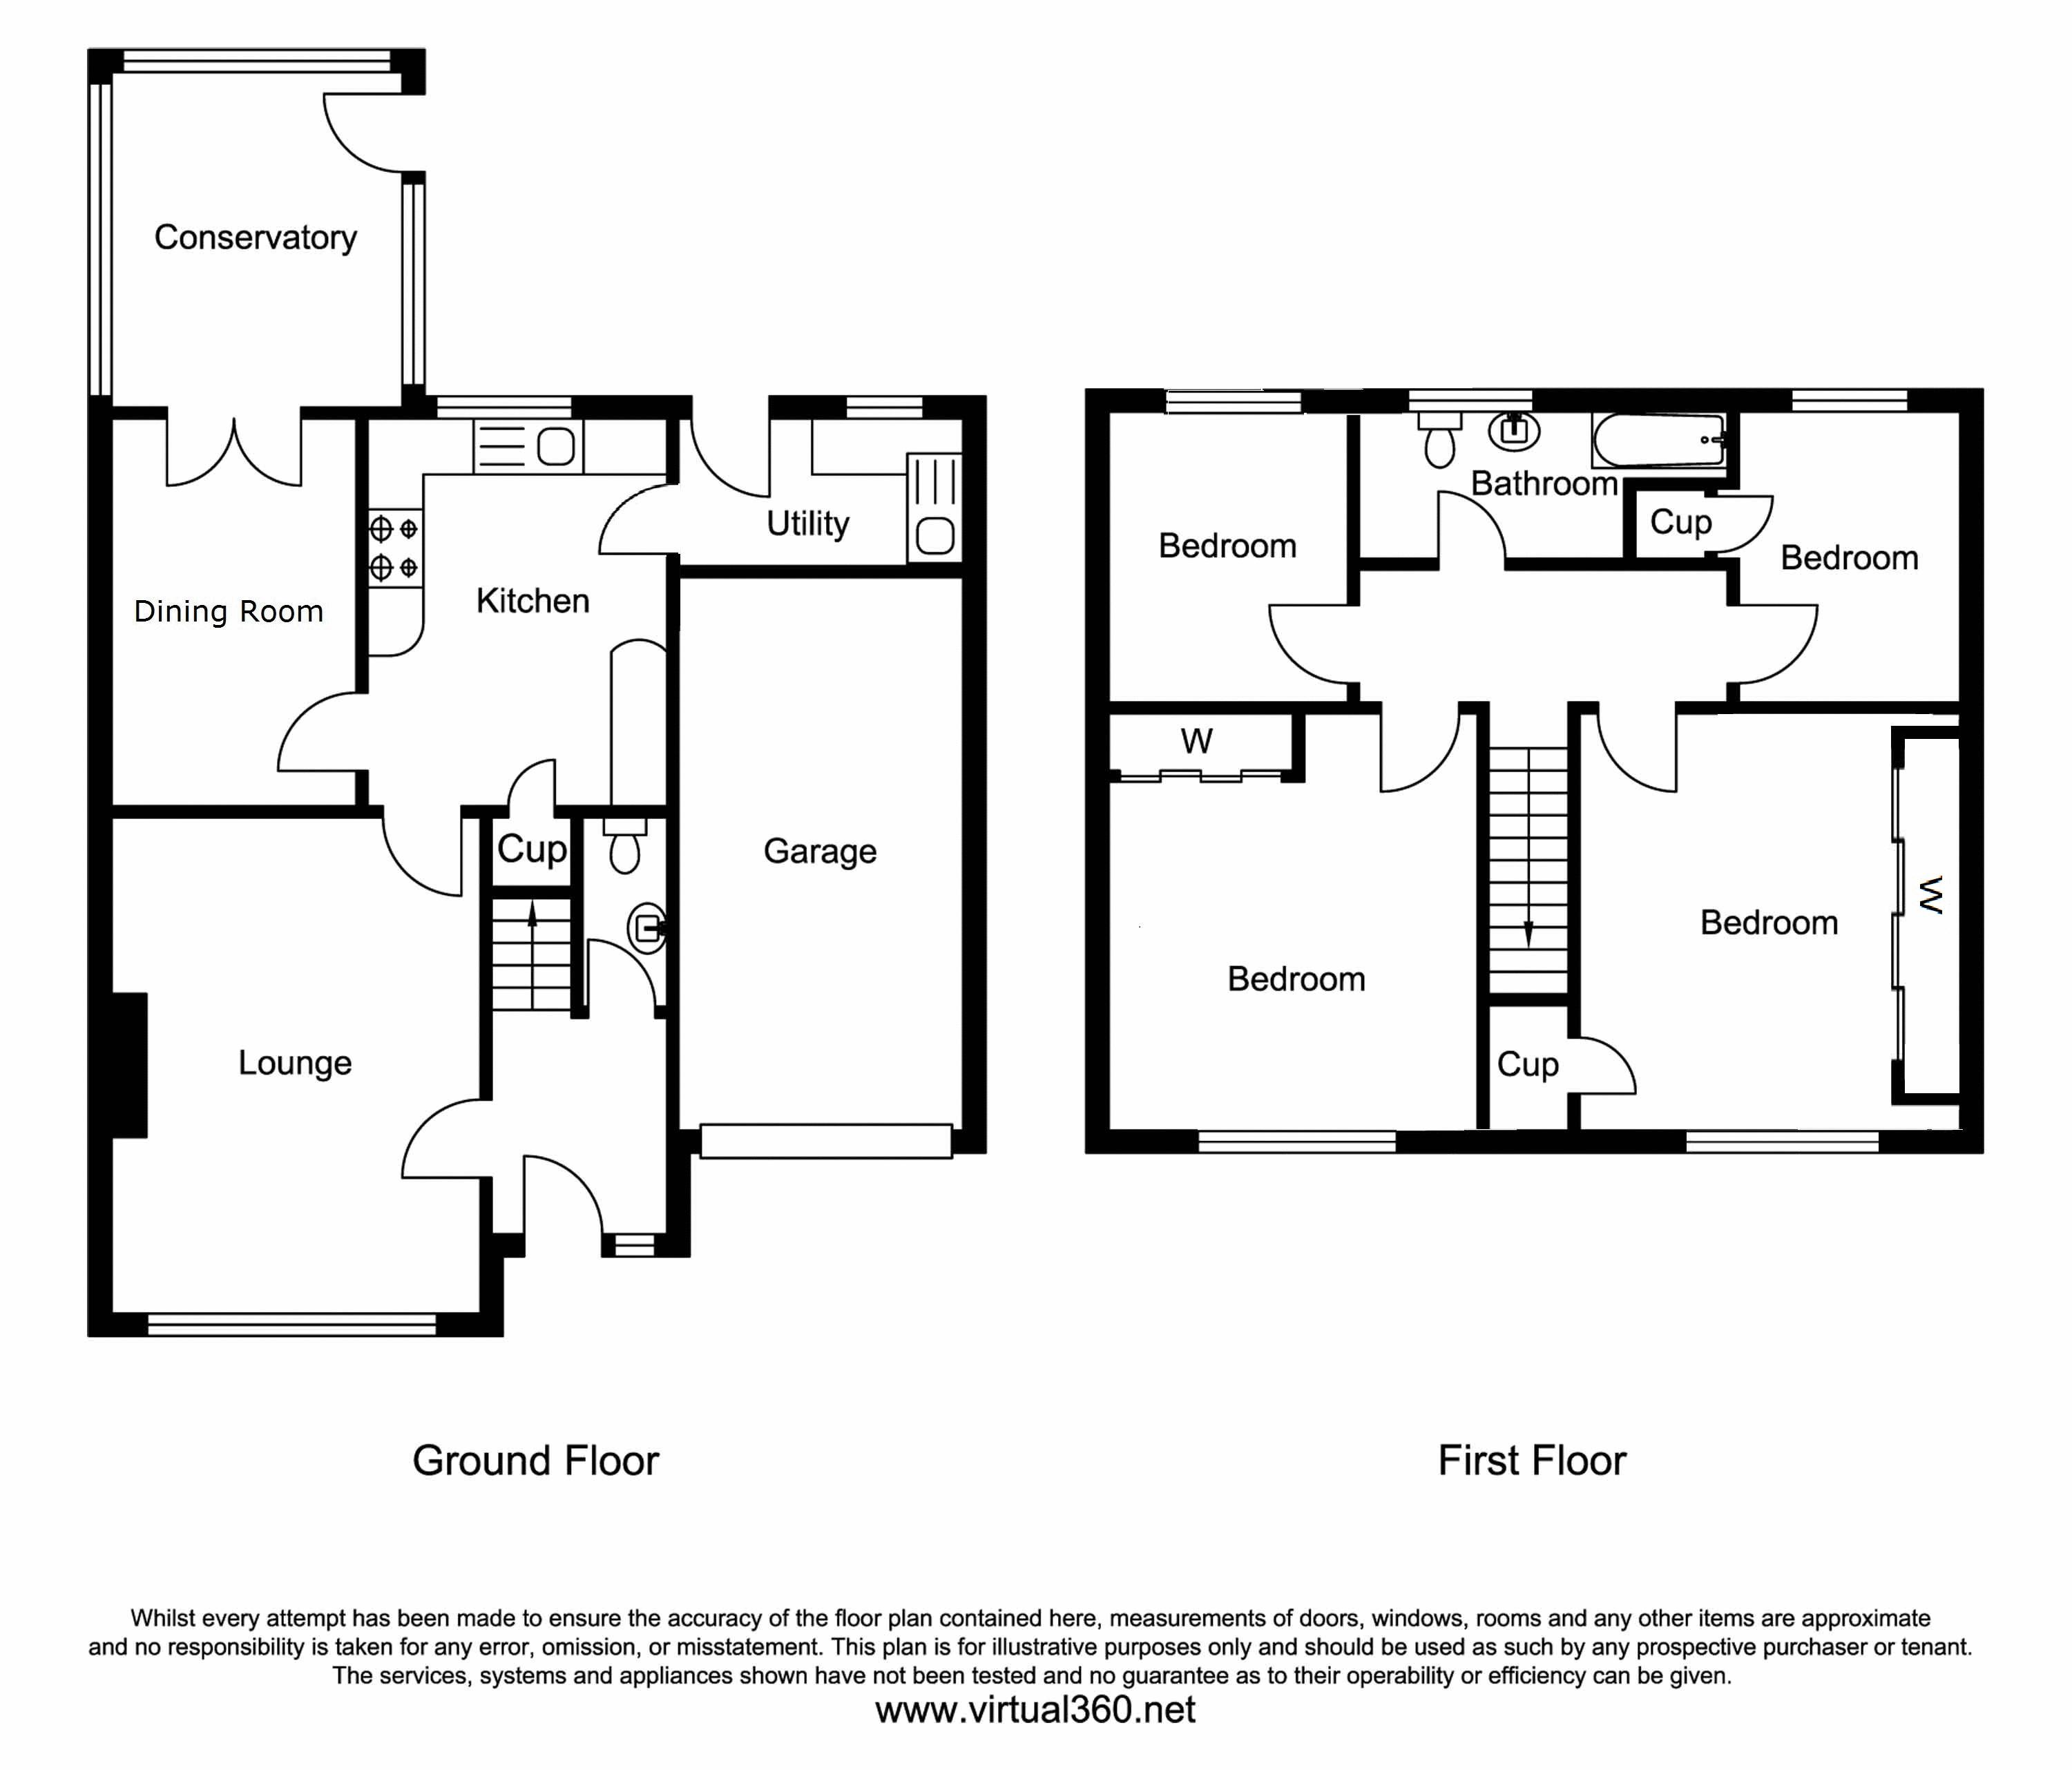 Primrose Avenue, Crewe, Haslington floor plan